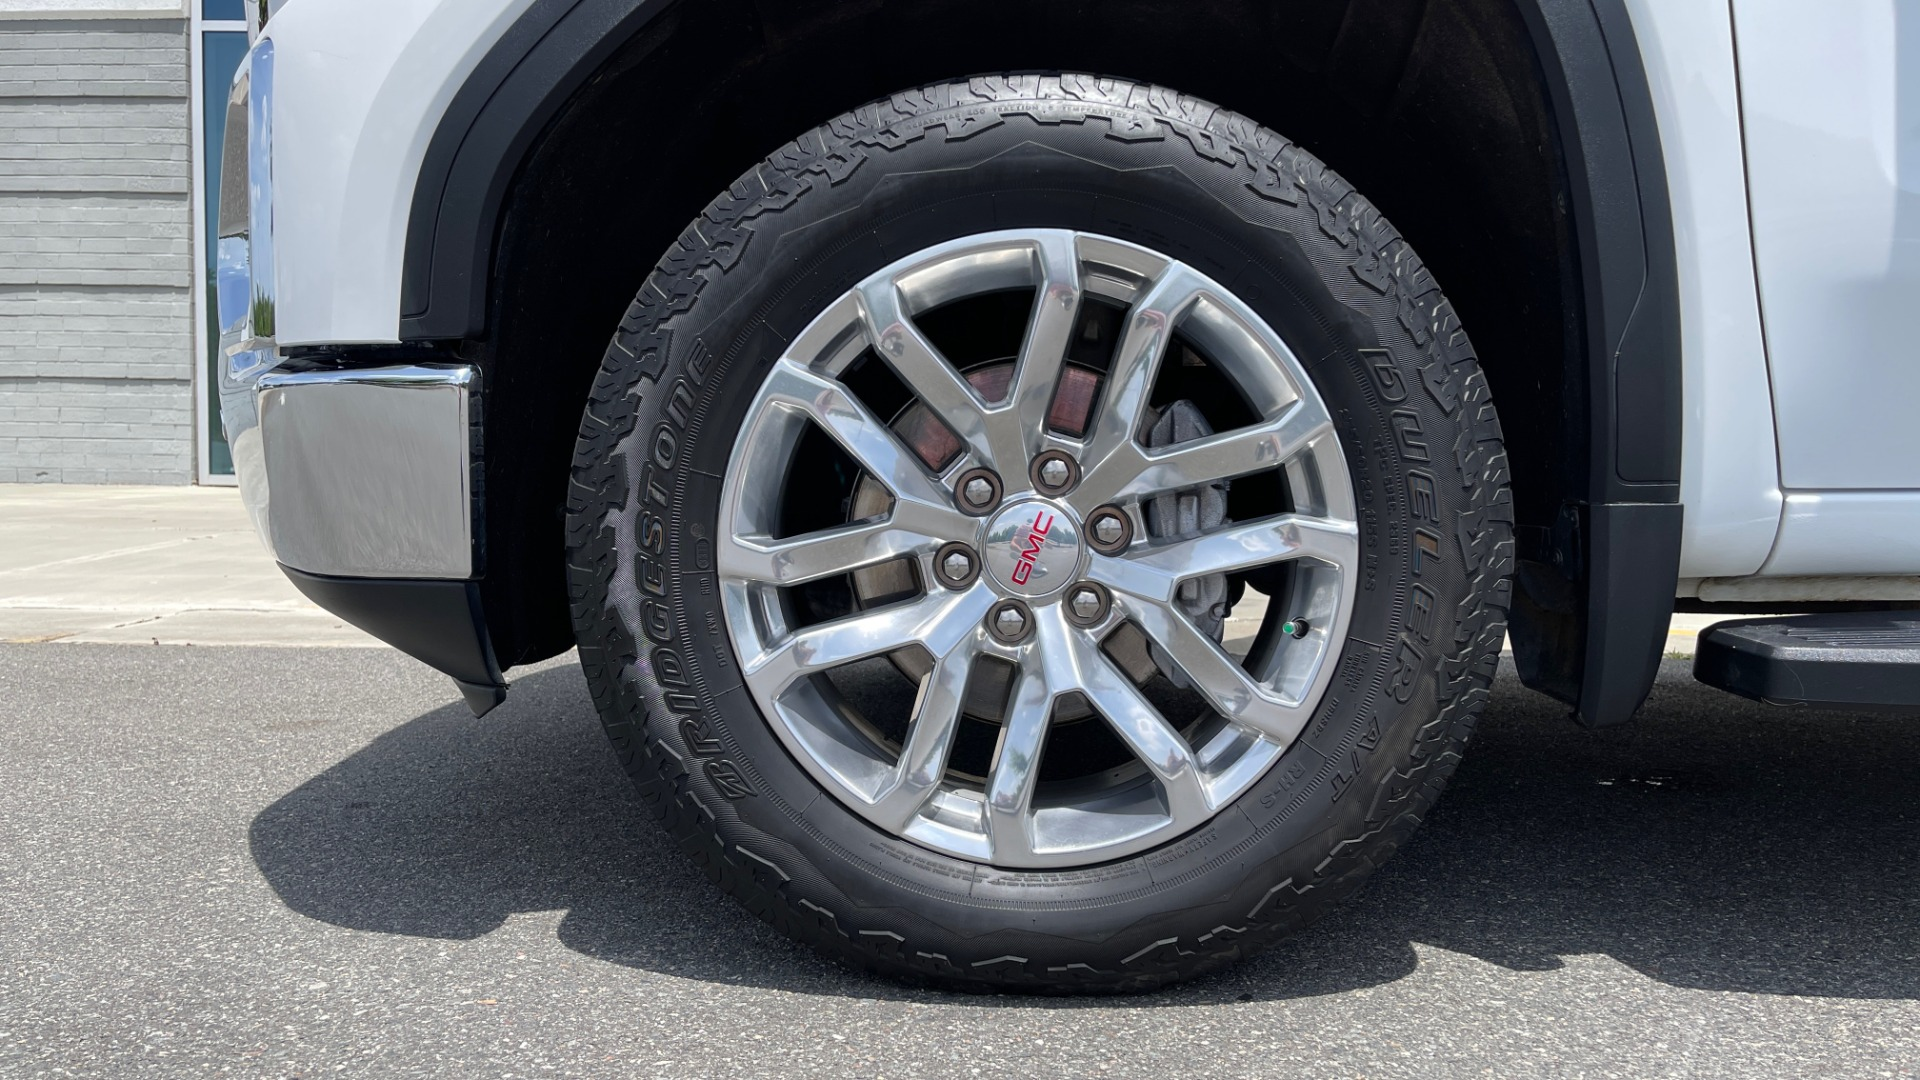 Used 2019 GMC SIERRA 1500 SLT 4X4 CREWCAB / 5.3L V8 / 8-SPD AUTO / NAV / BOSE / REARVIEW for sale $49,999 at Formula Imports in Charlotte NC 28227 80